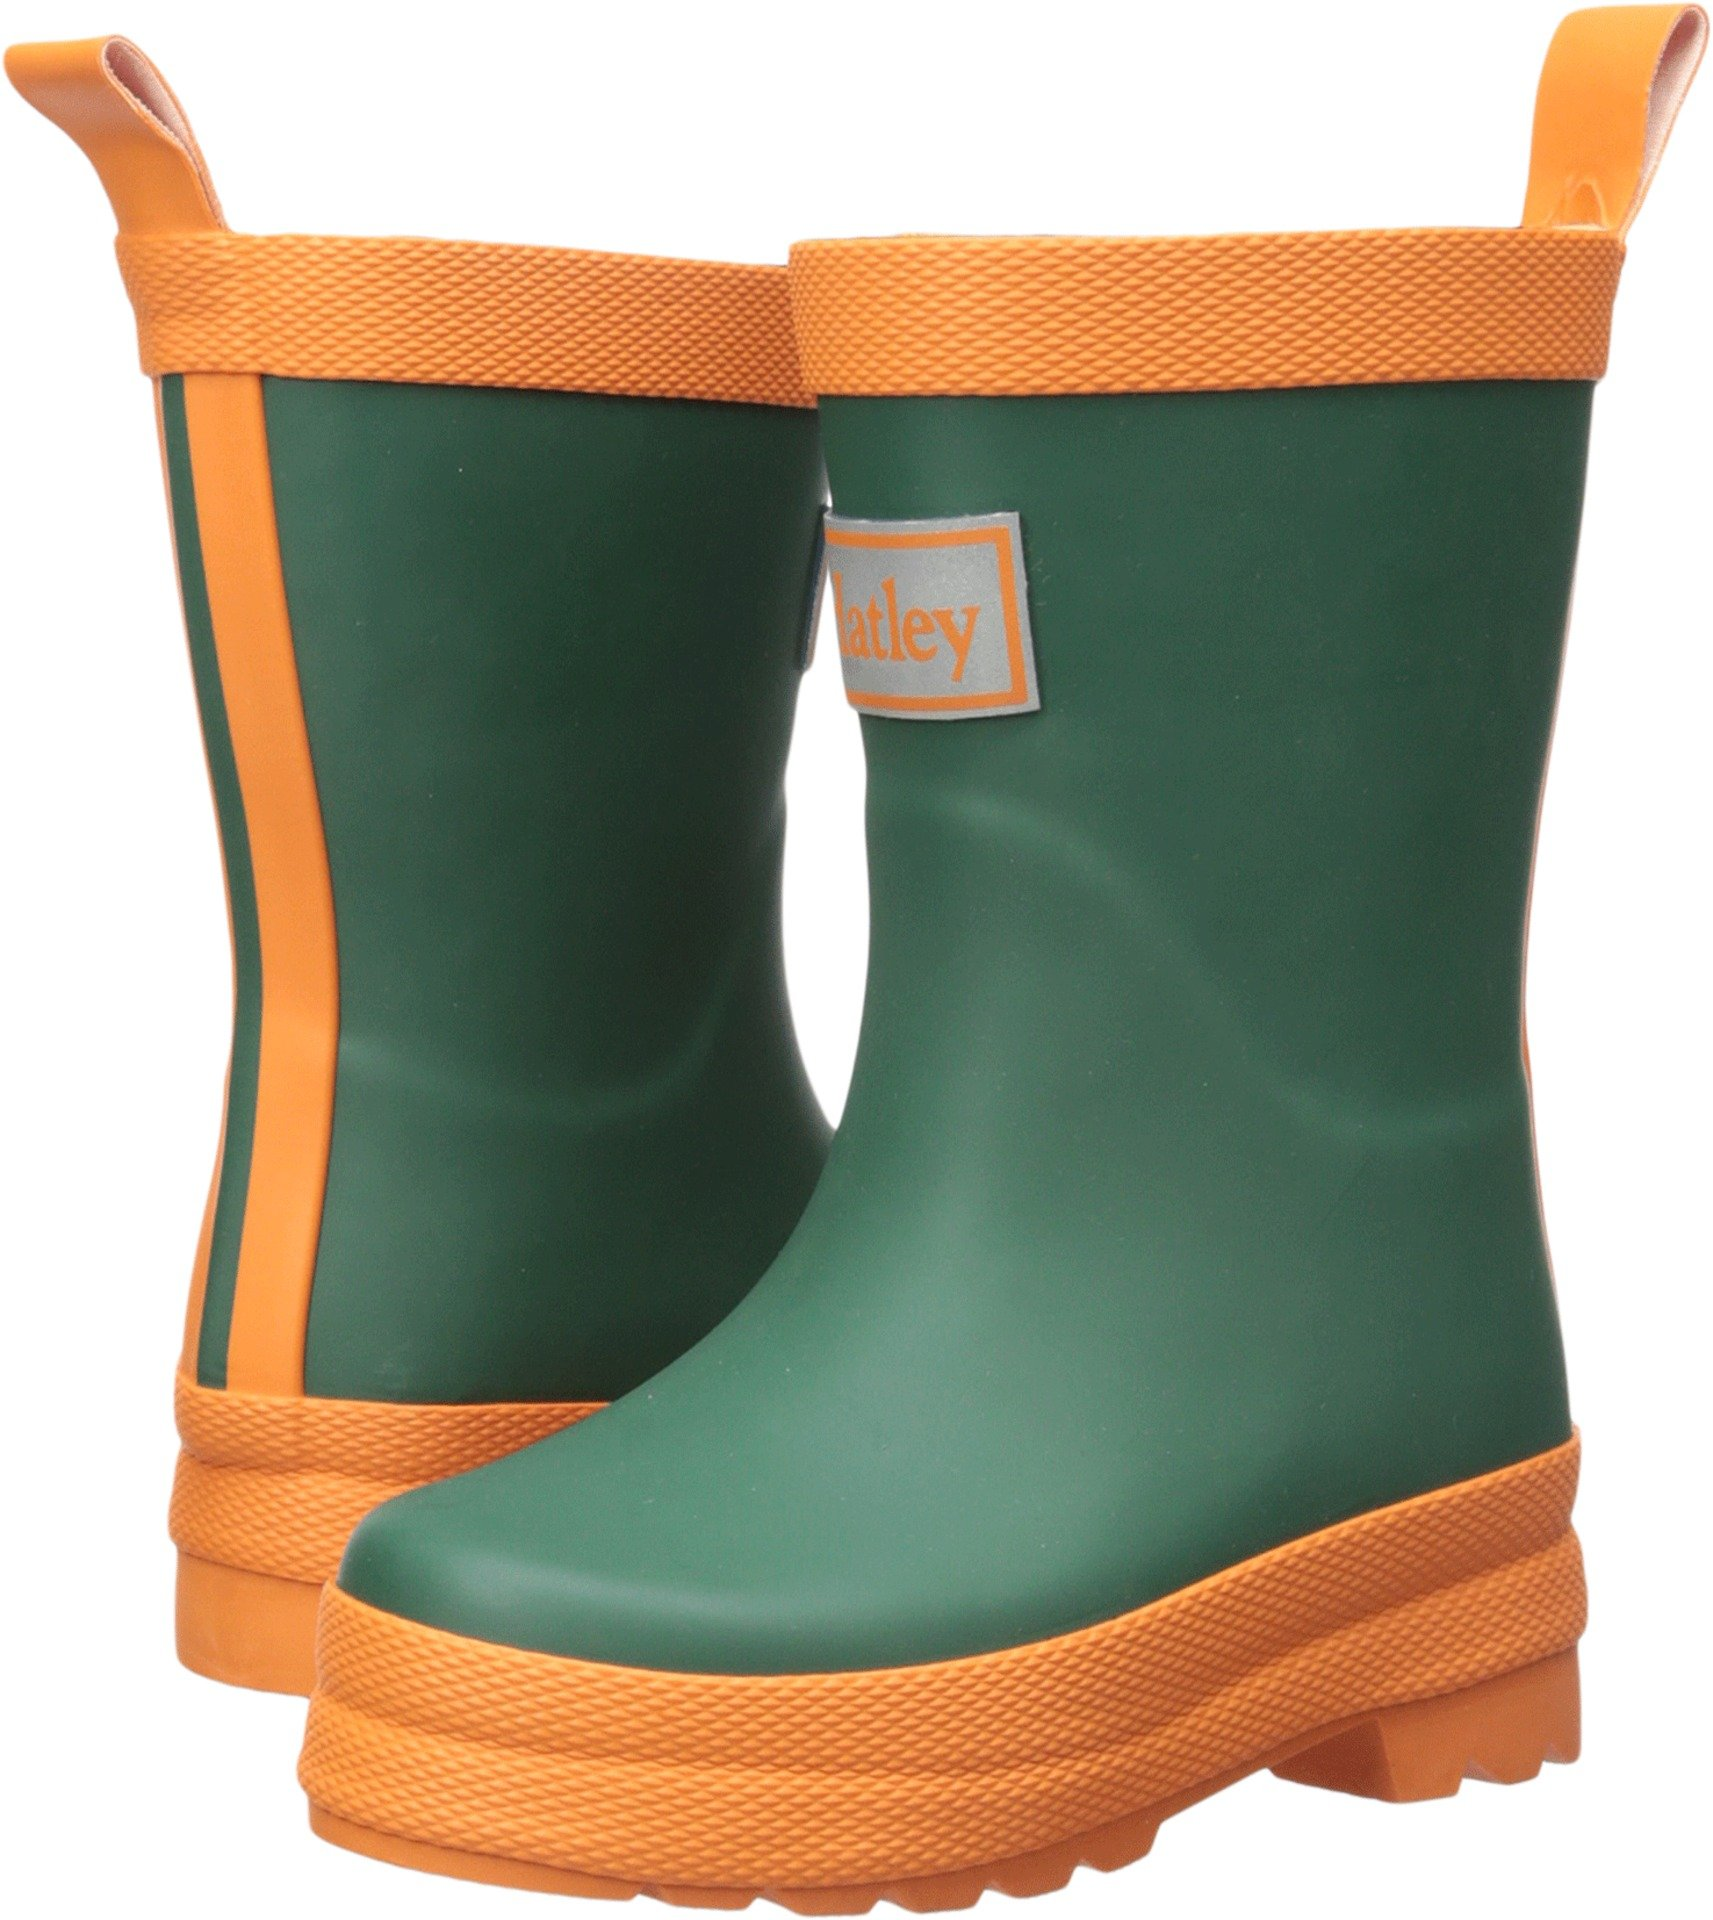 Hatley Kids' Classic Boots Rain Accessory, Green and Orange, 5 M US Toddler